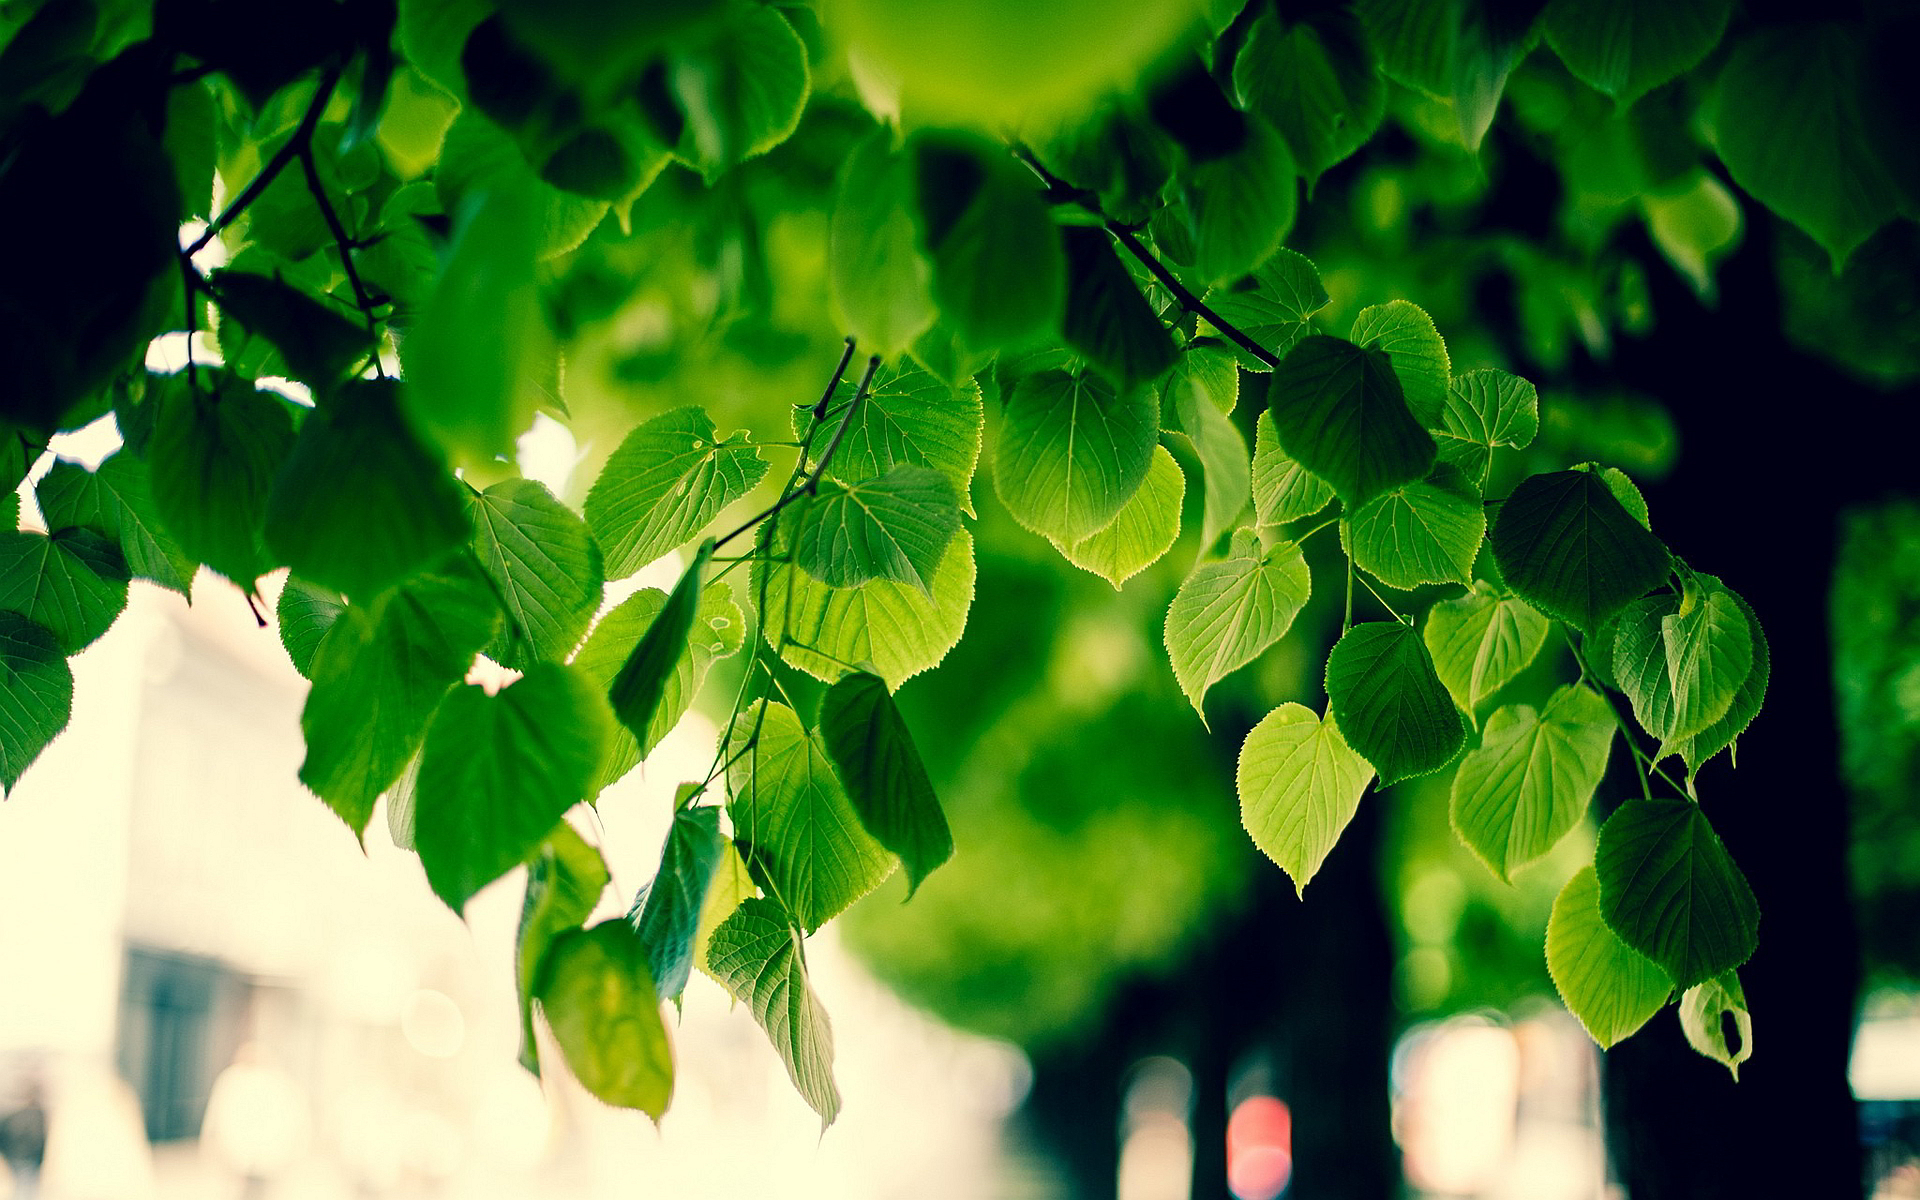 green tree images hd